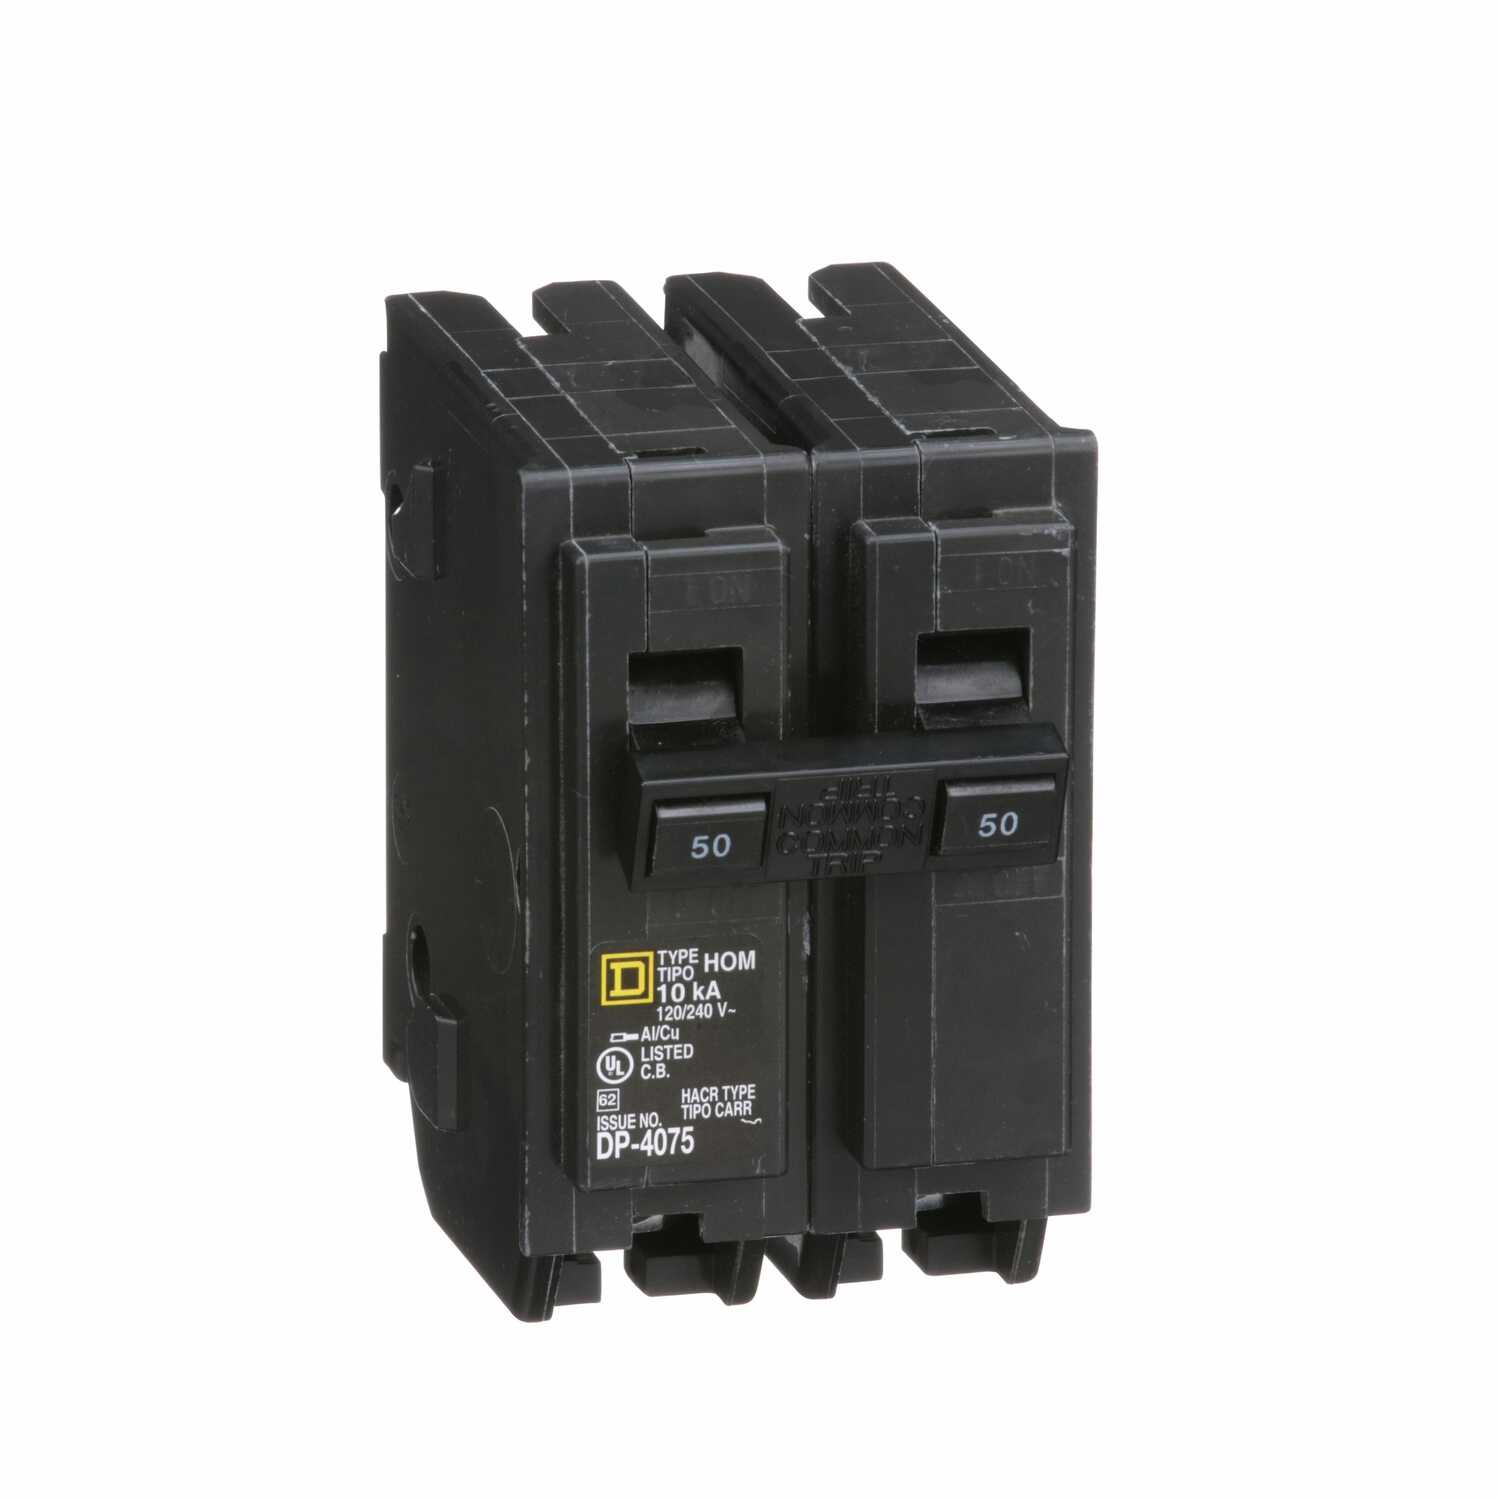 Square D HomeLine 50 amps Plug In 2-Pole Circuit Breaker - Ace Hardware